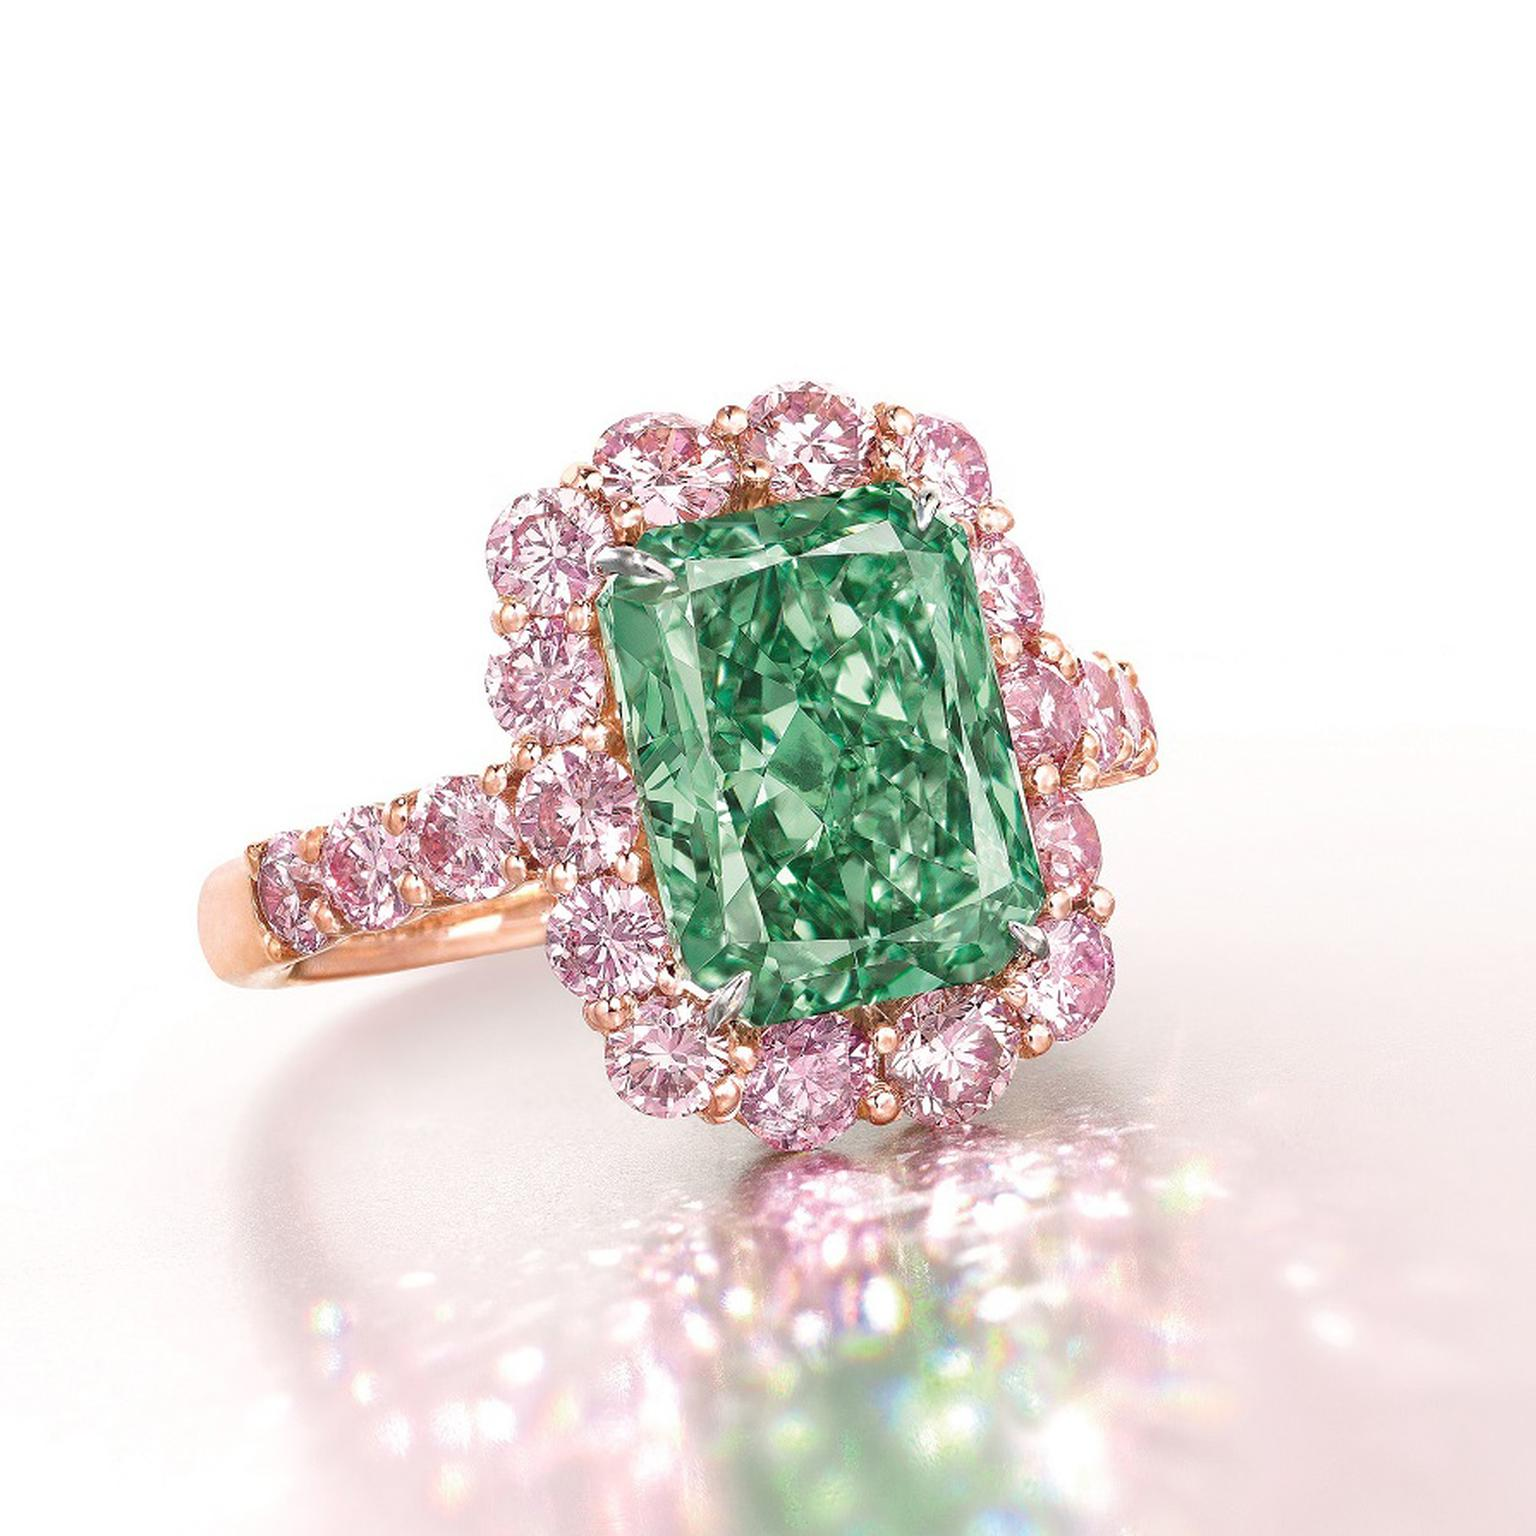 "Green Diamond - ""Real is Rare"" - Real is a Diamond!"